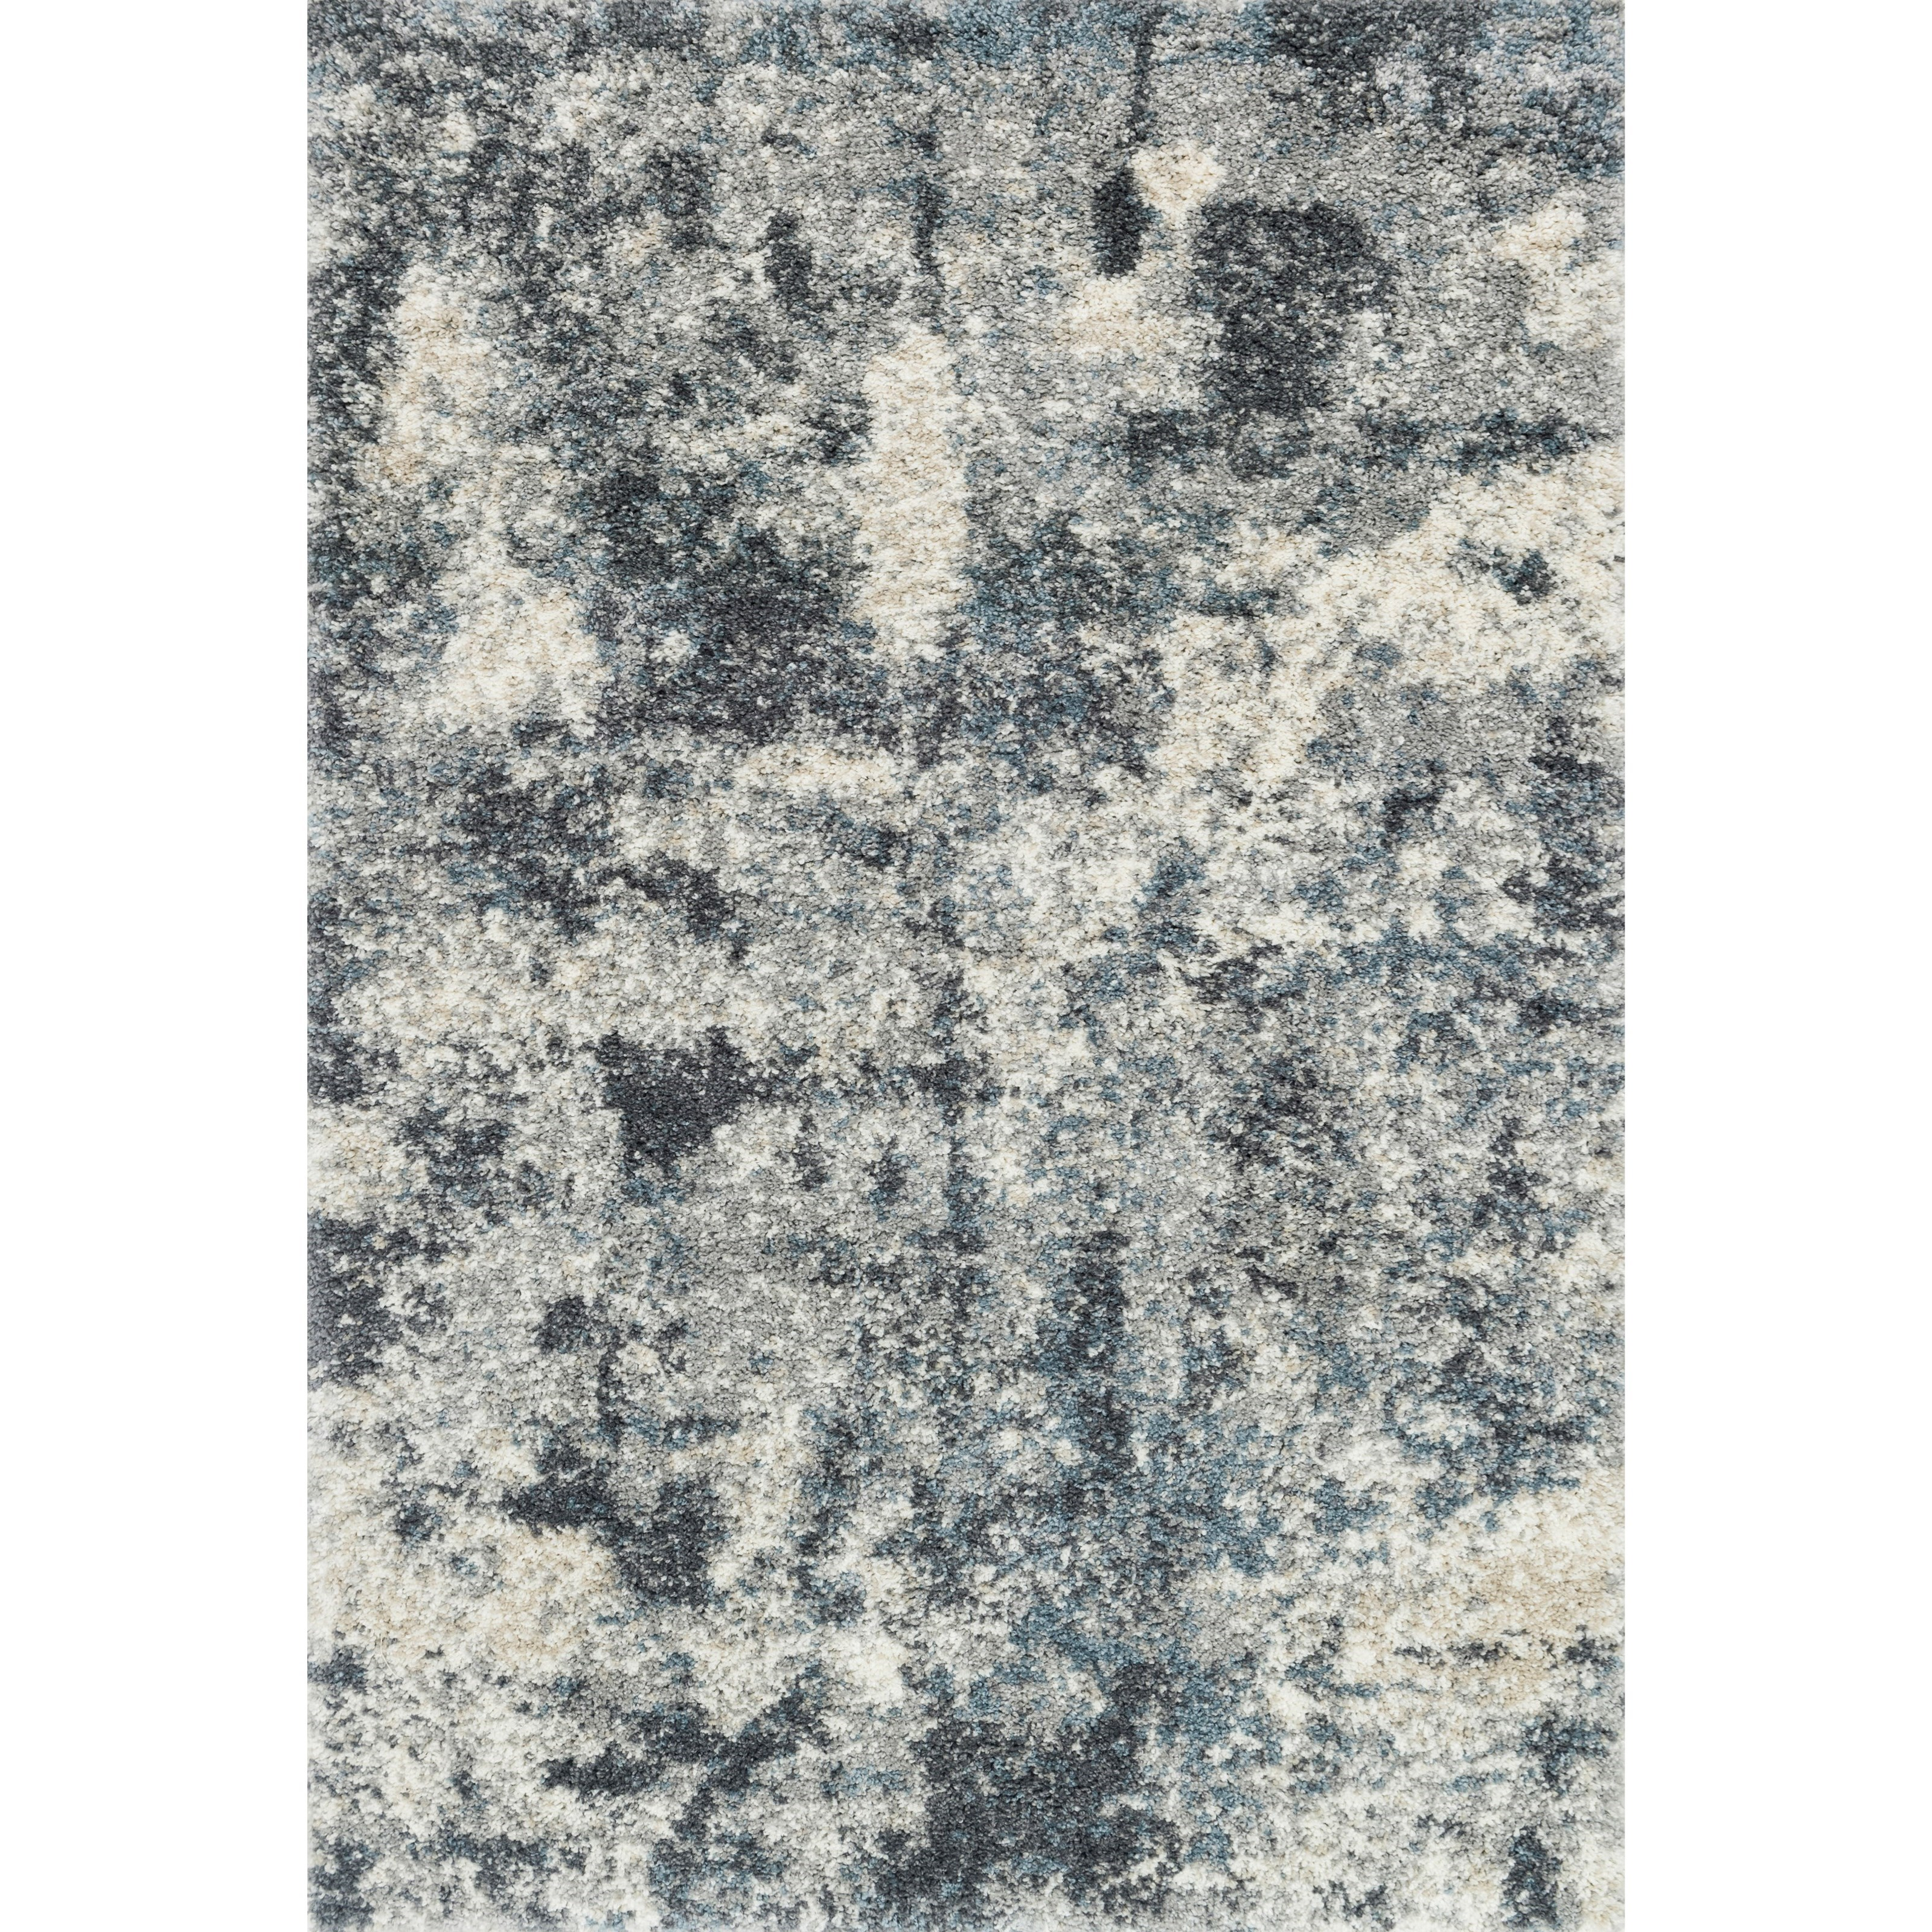 """Quincy 8'10"""" x 12' Slate Rug by Loloi Rugs at Virginia Furniture Market"""